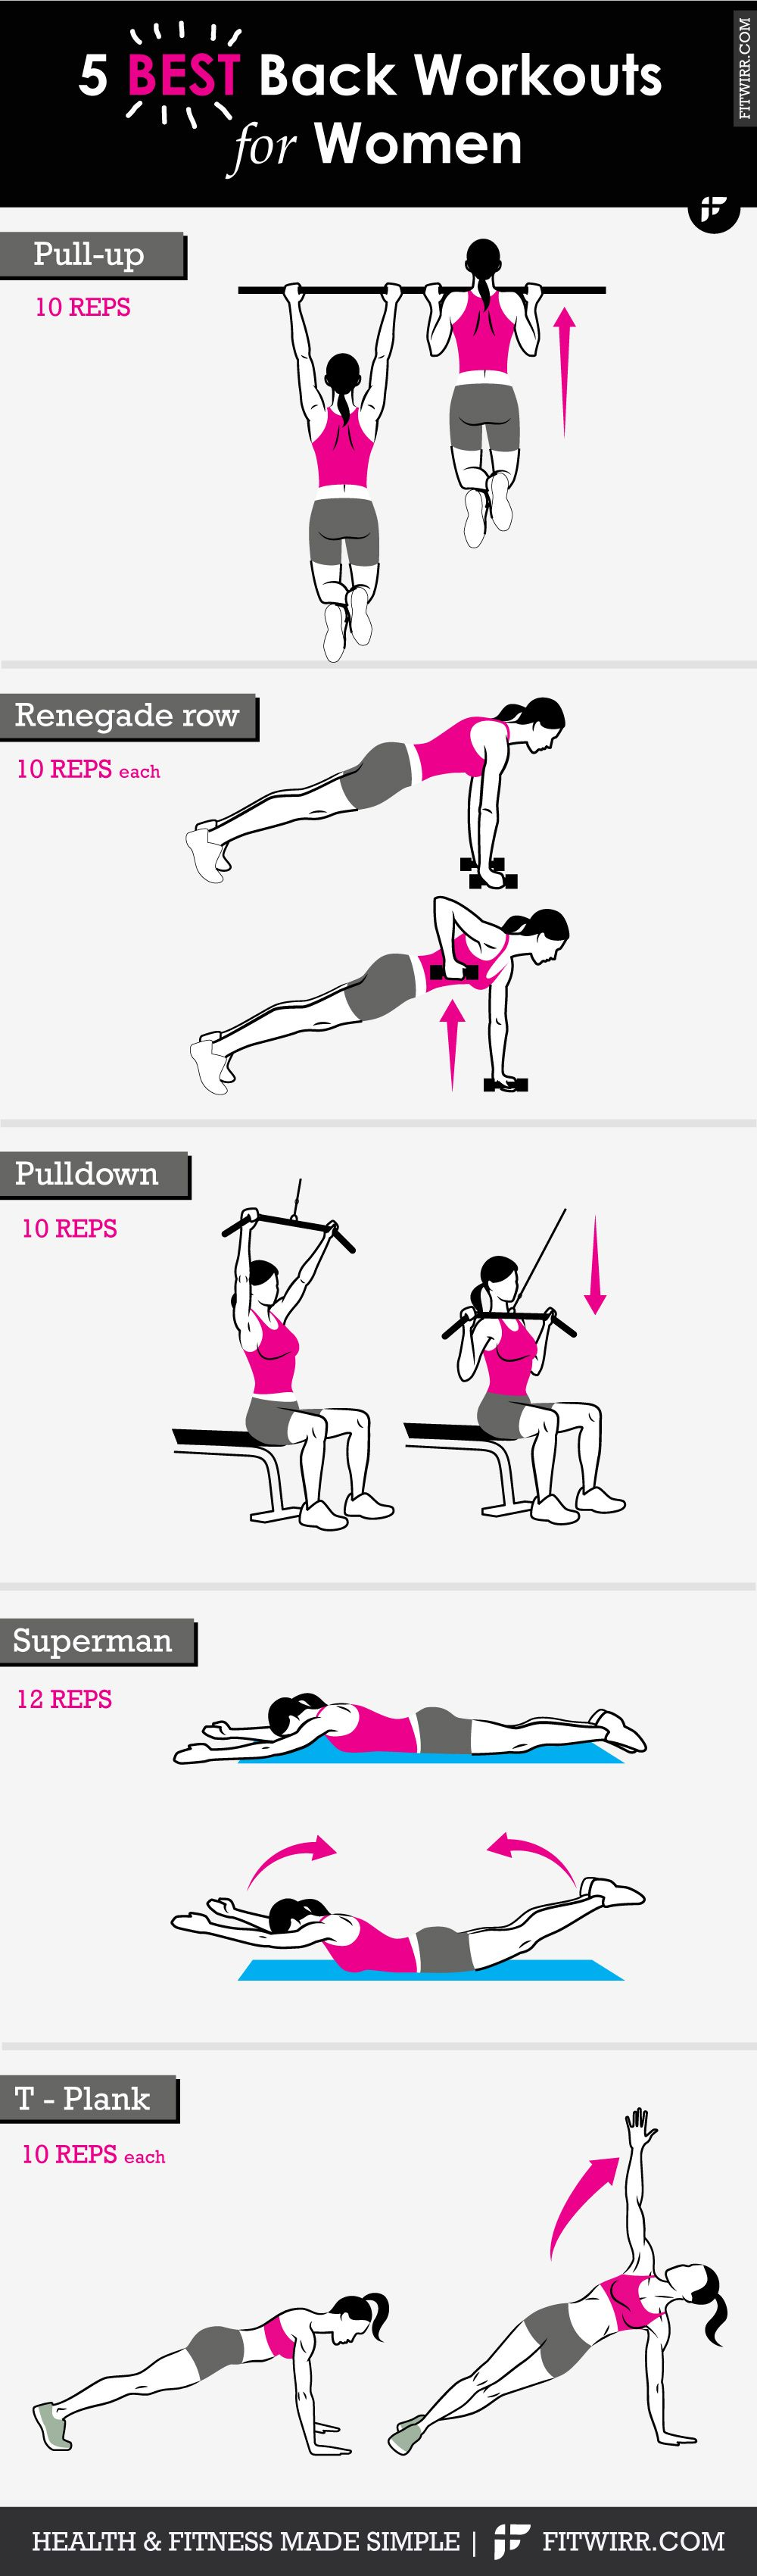 5 Best Back Workouts for Women to Get Sleek and Toned Back